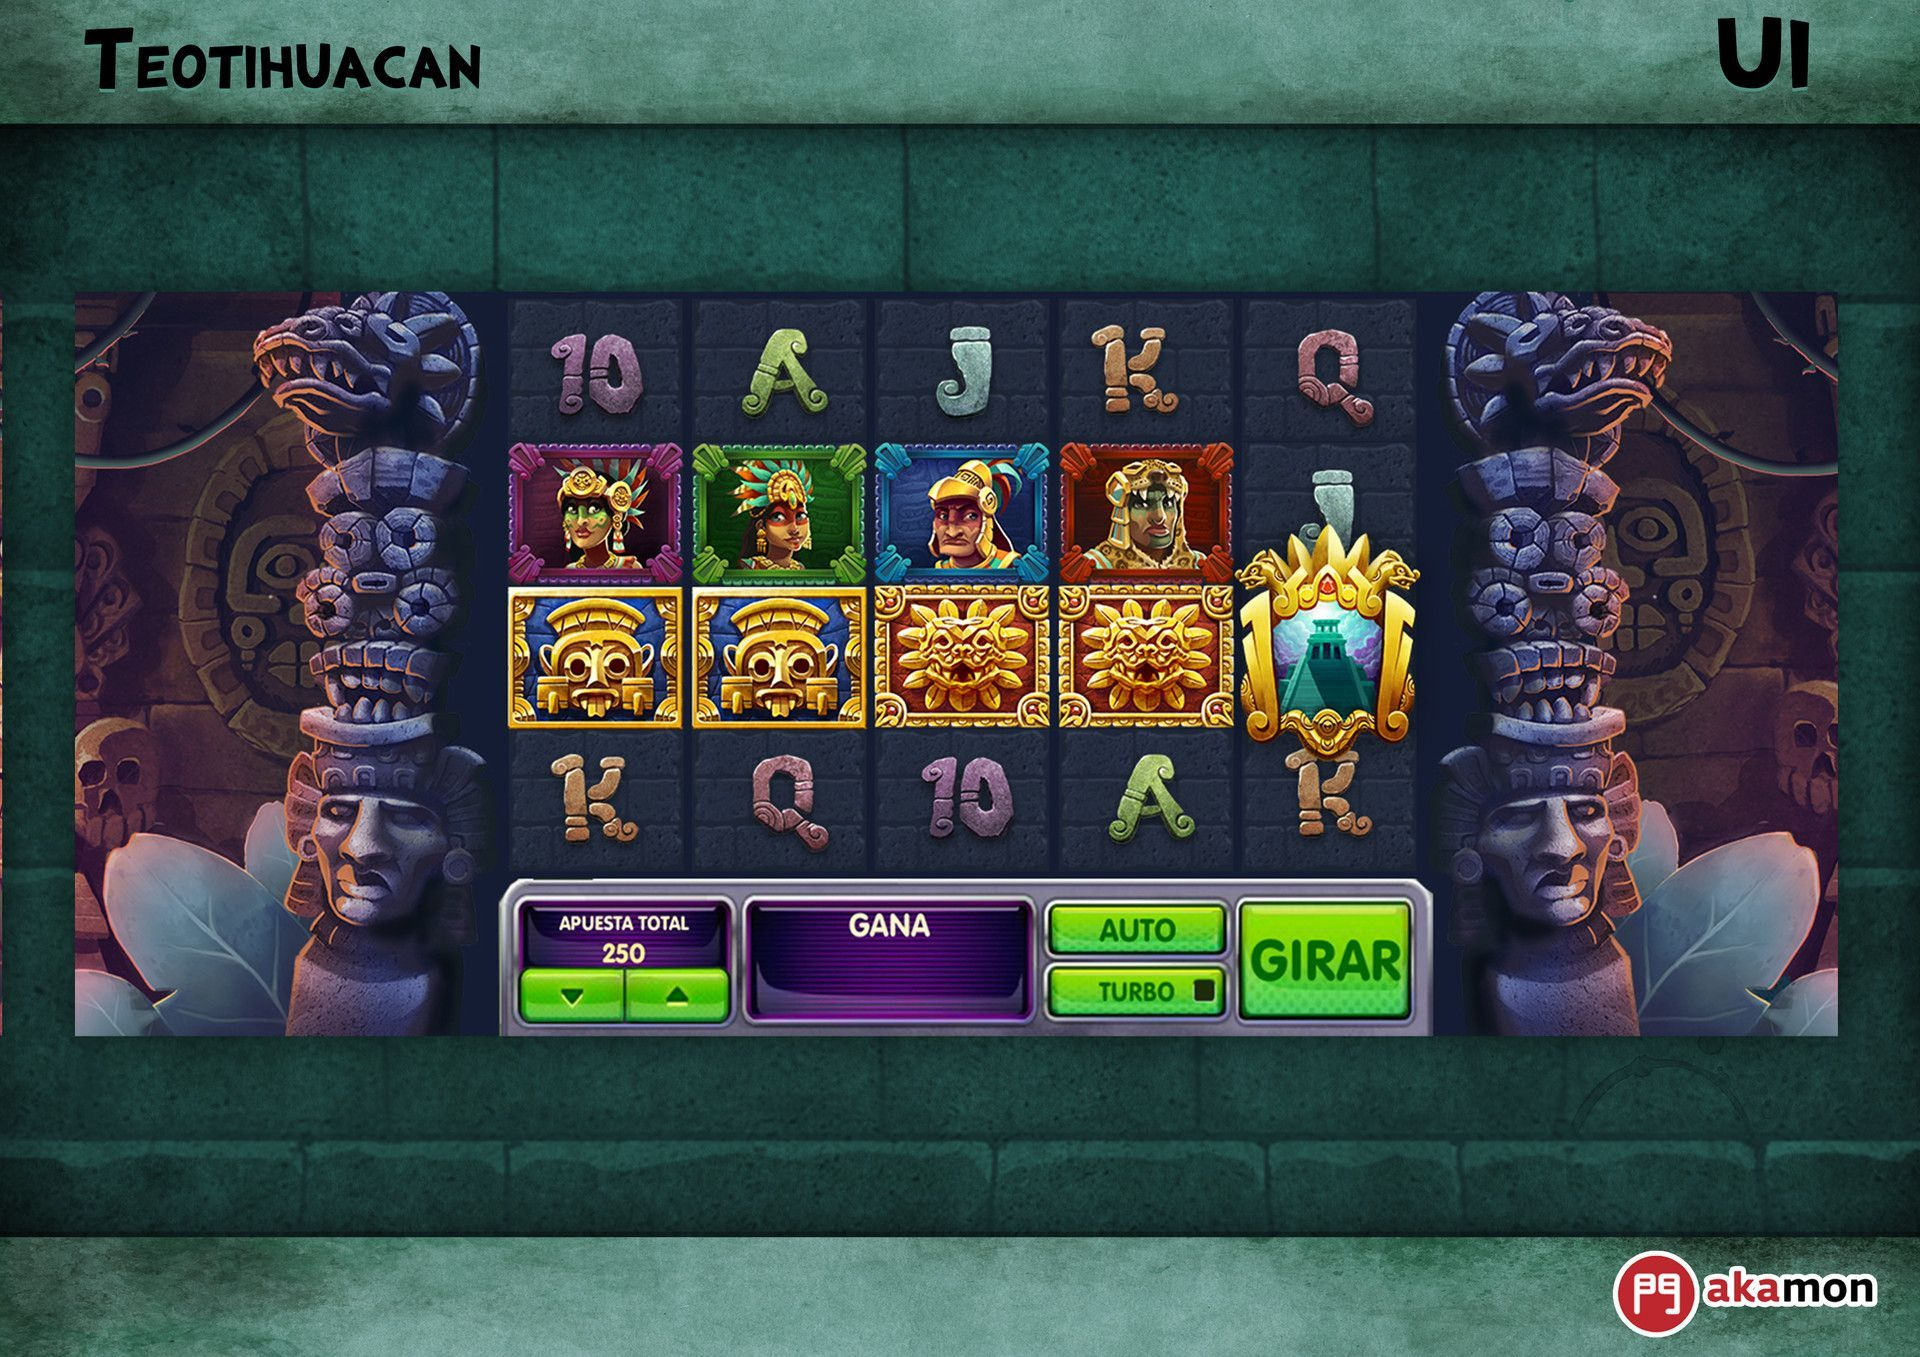 Artstation Teotihuacan Slot Videogame Yizard Onlinecasinomalaysia Trustedonlinecasino Scr888 Supergold7slot 918 Teotihuacan Game Design Game Concept